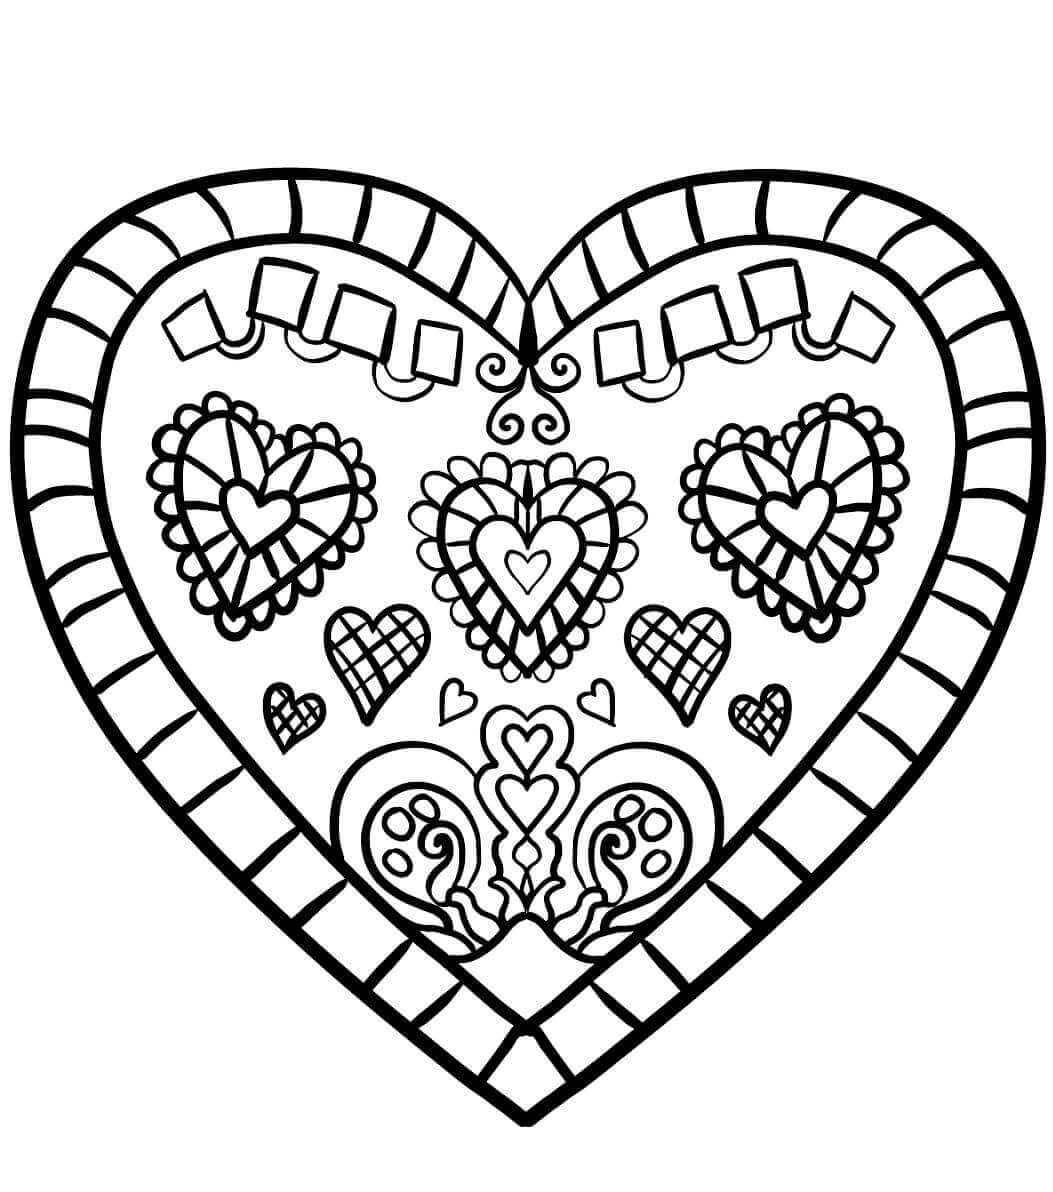 coloring book pictures of hearts free printable heart coloring pages for kids cool2bkids of book coloring hearts pictures